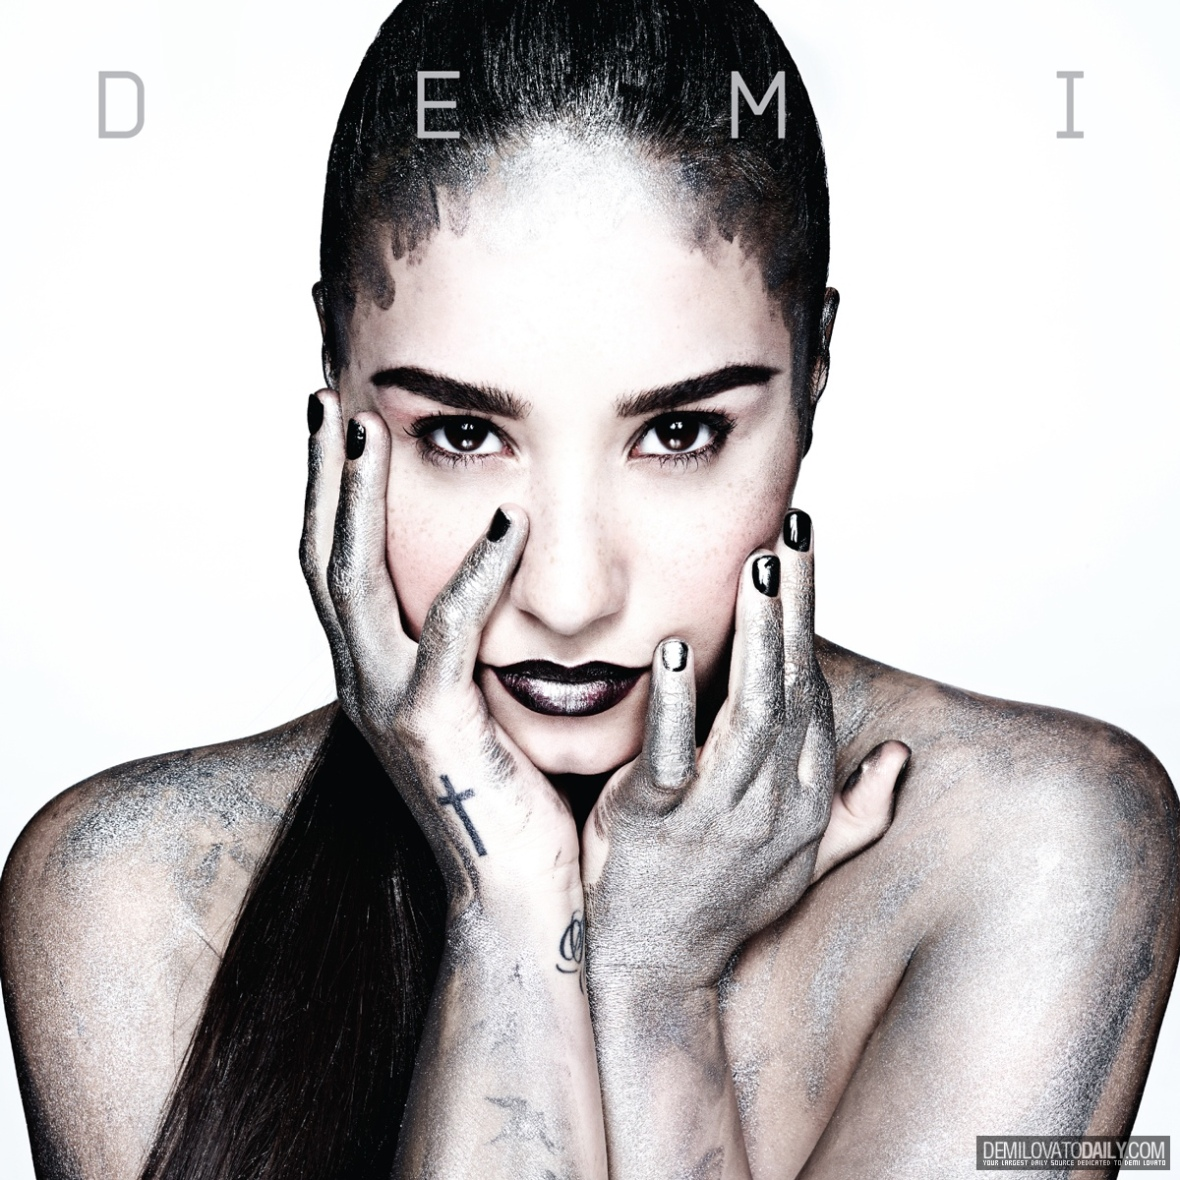 Demi-Album-Demi-Cover-2013-demi-lovato-34144078-1200-1200